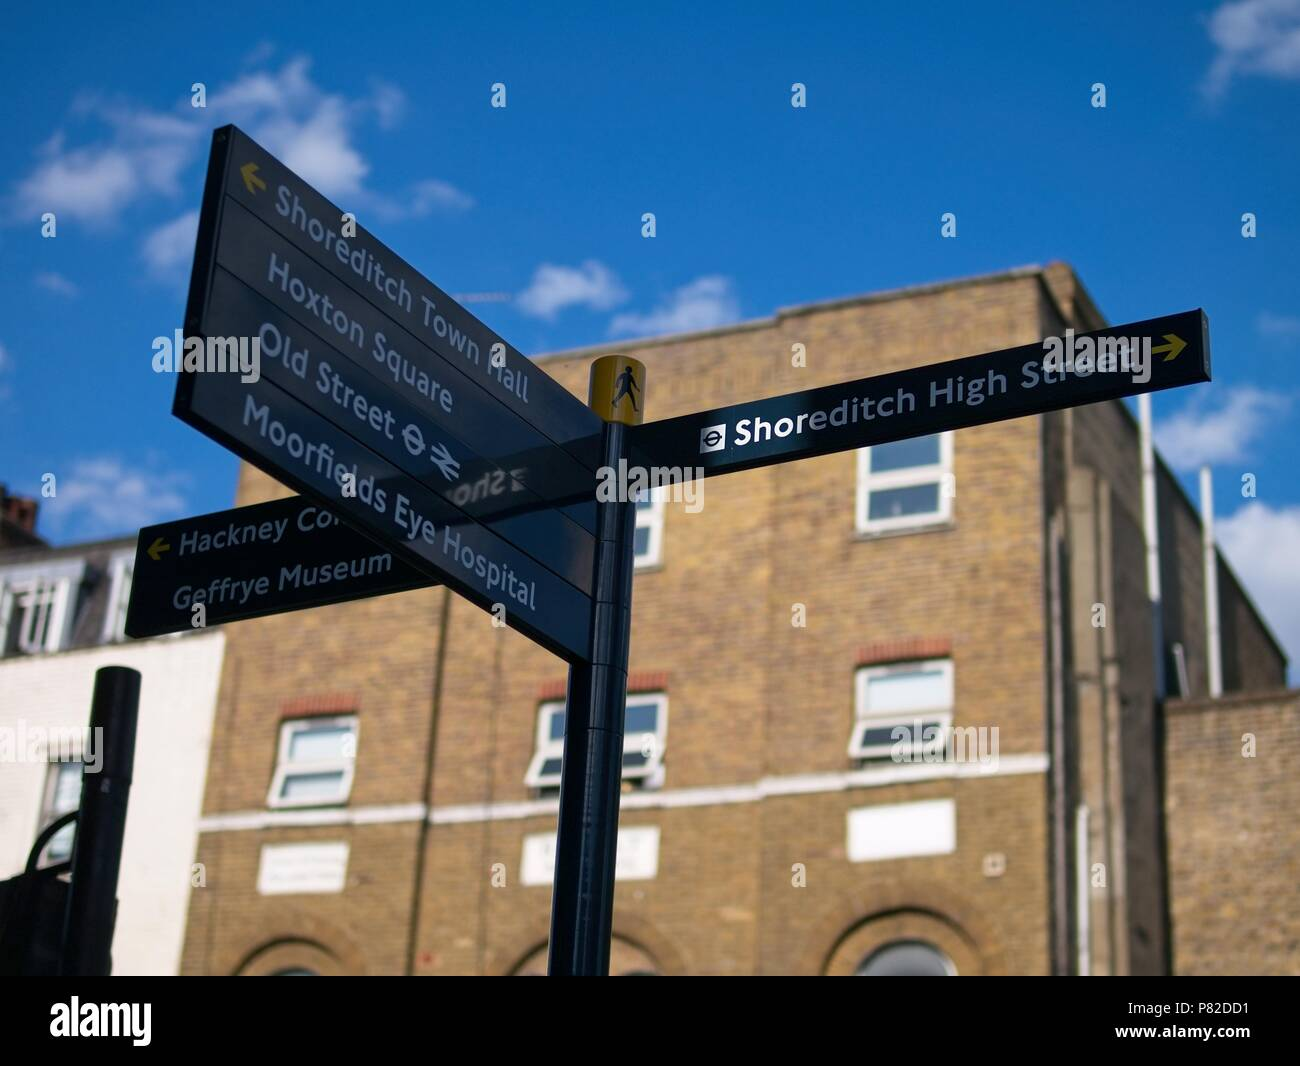 London, UK - July 07 2018: Tourist sign on the street, indicating directions to different places in Shoreditch area. - Stock Image